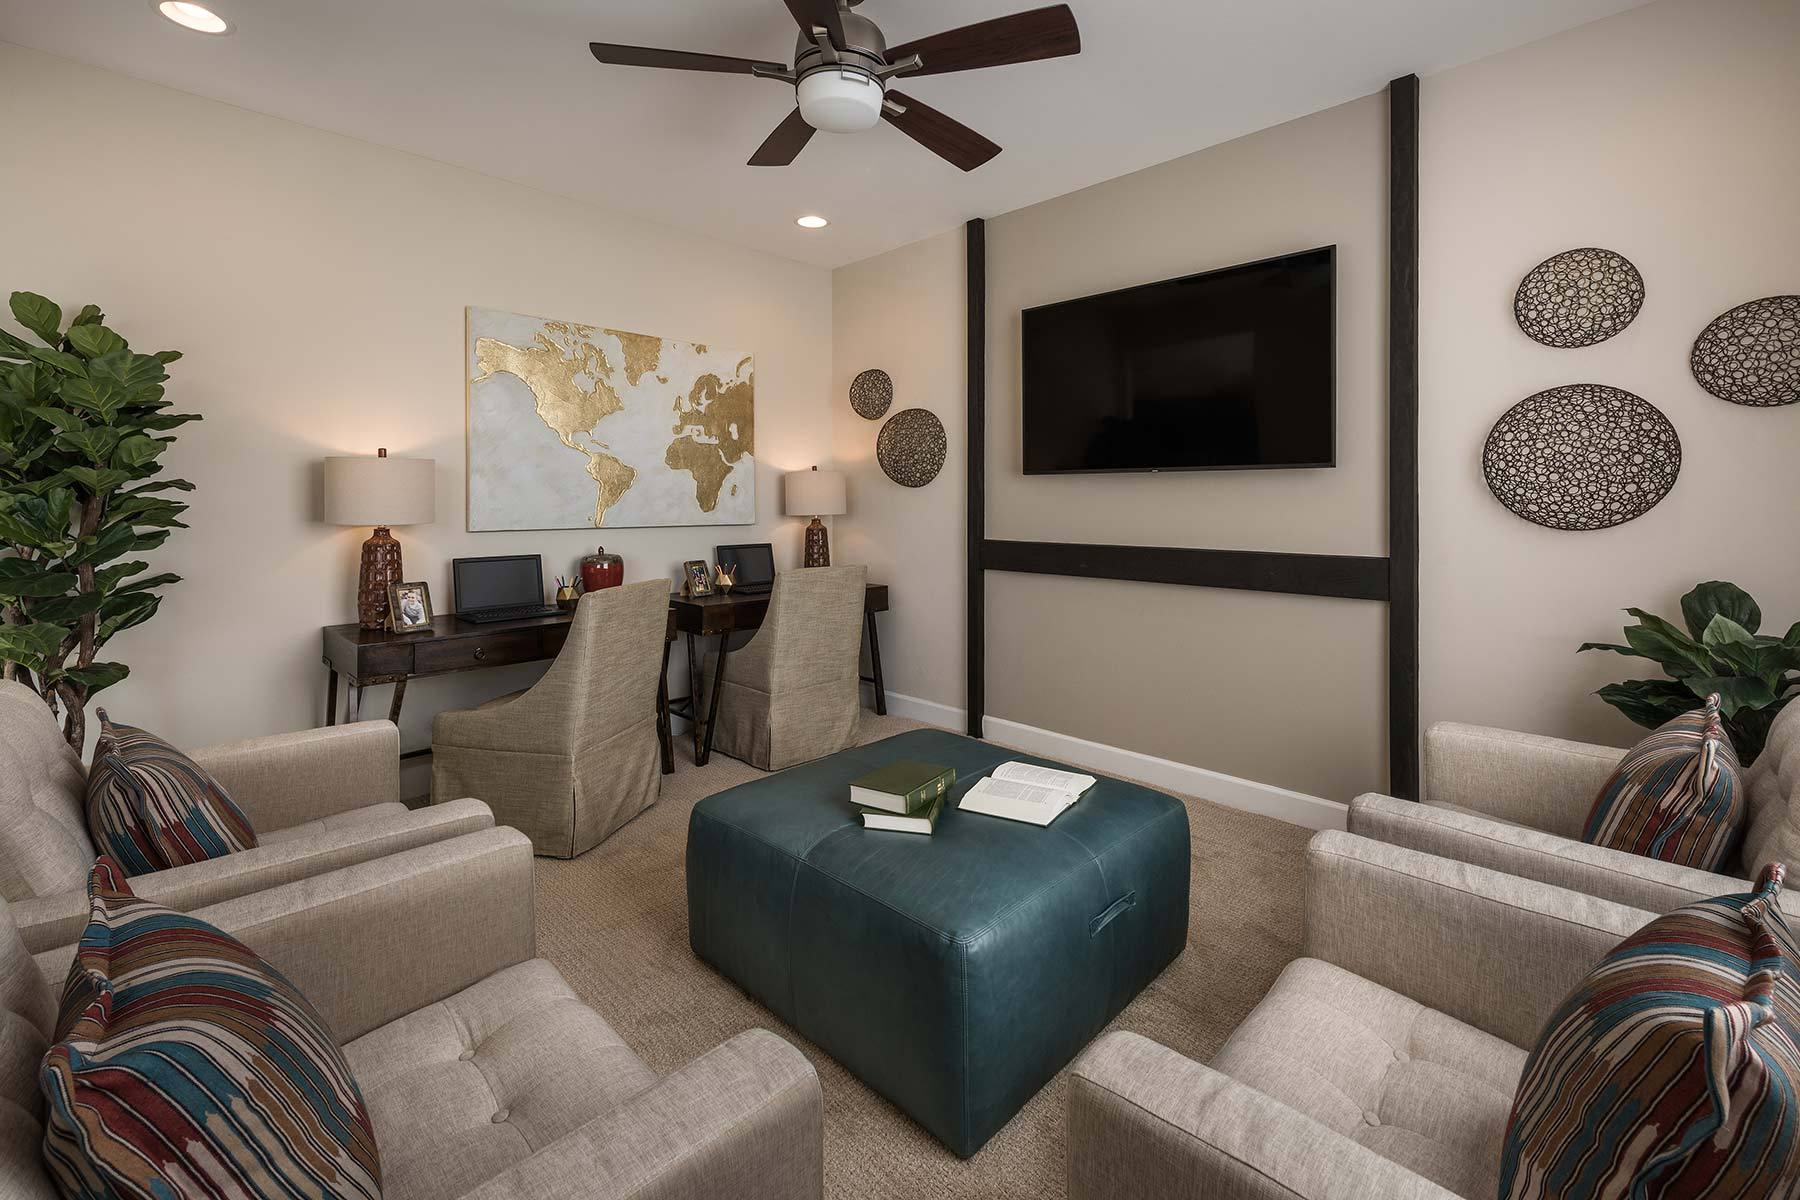 Living Area featured in the Agave By Mattamy Homes in Tucson, AZ